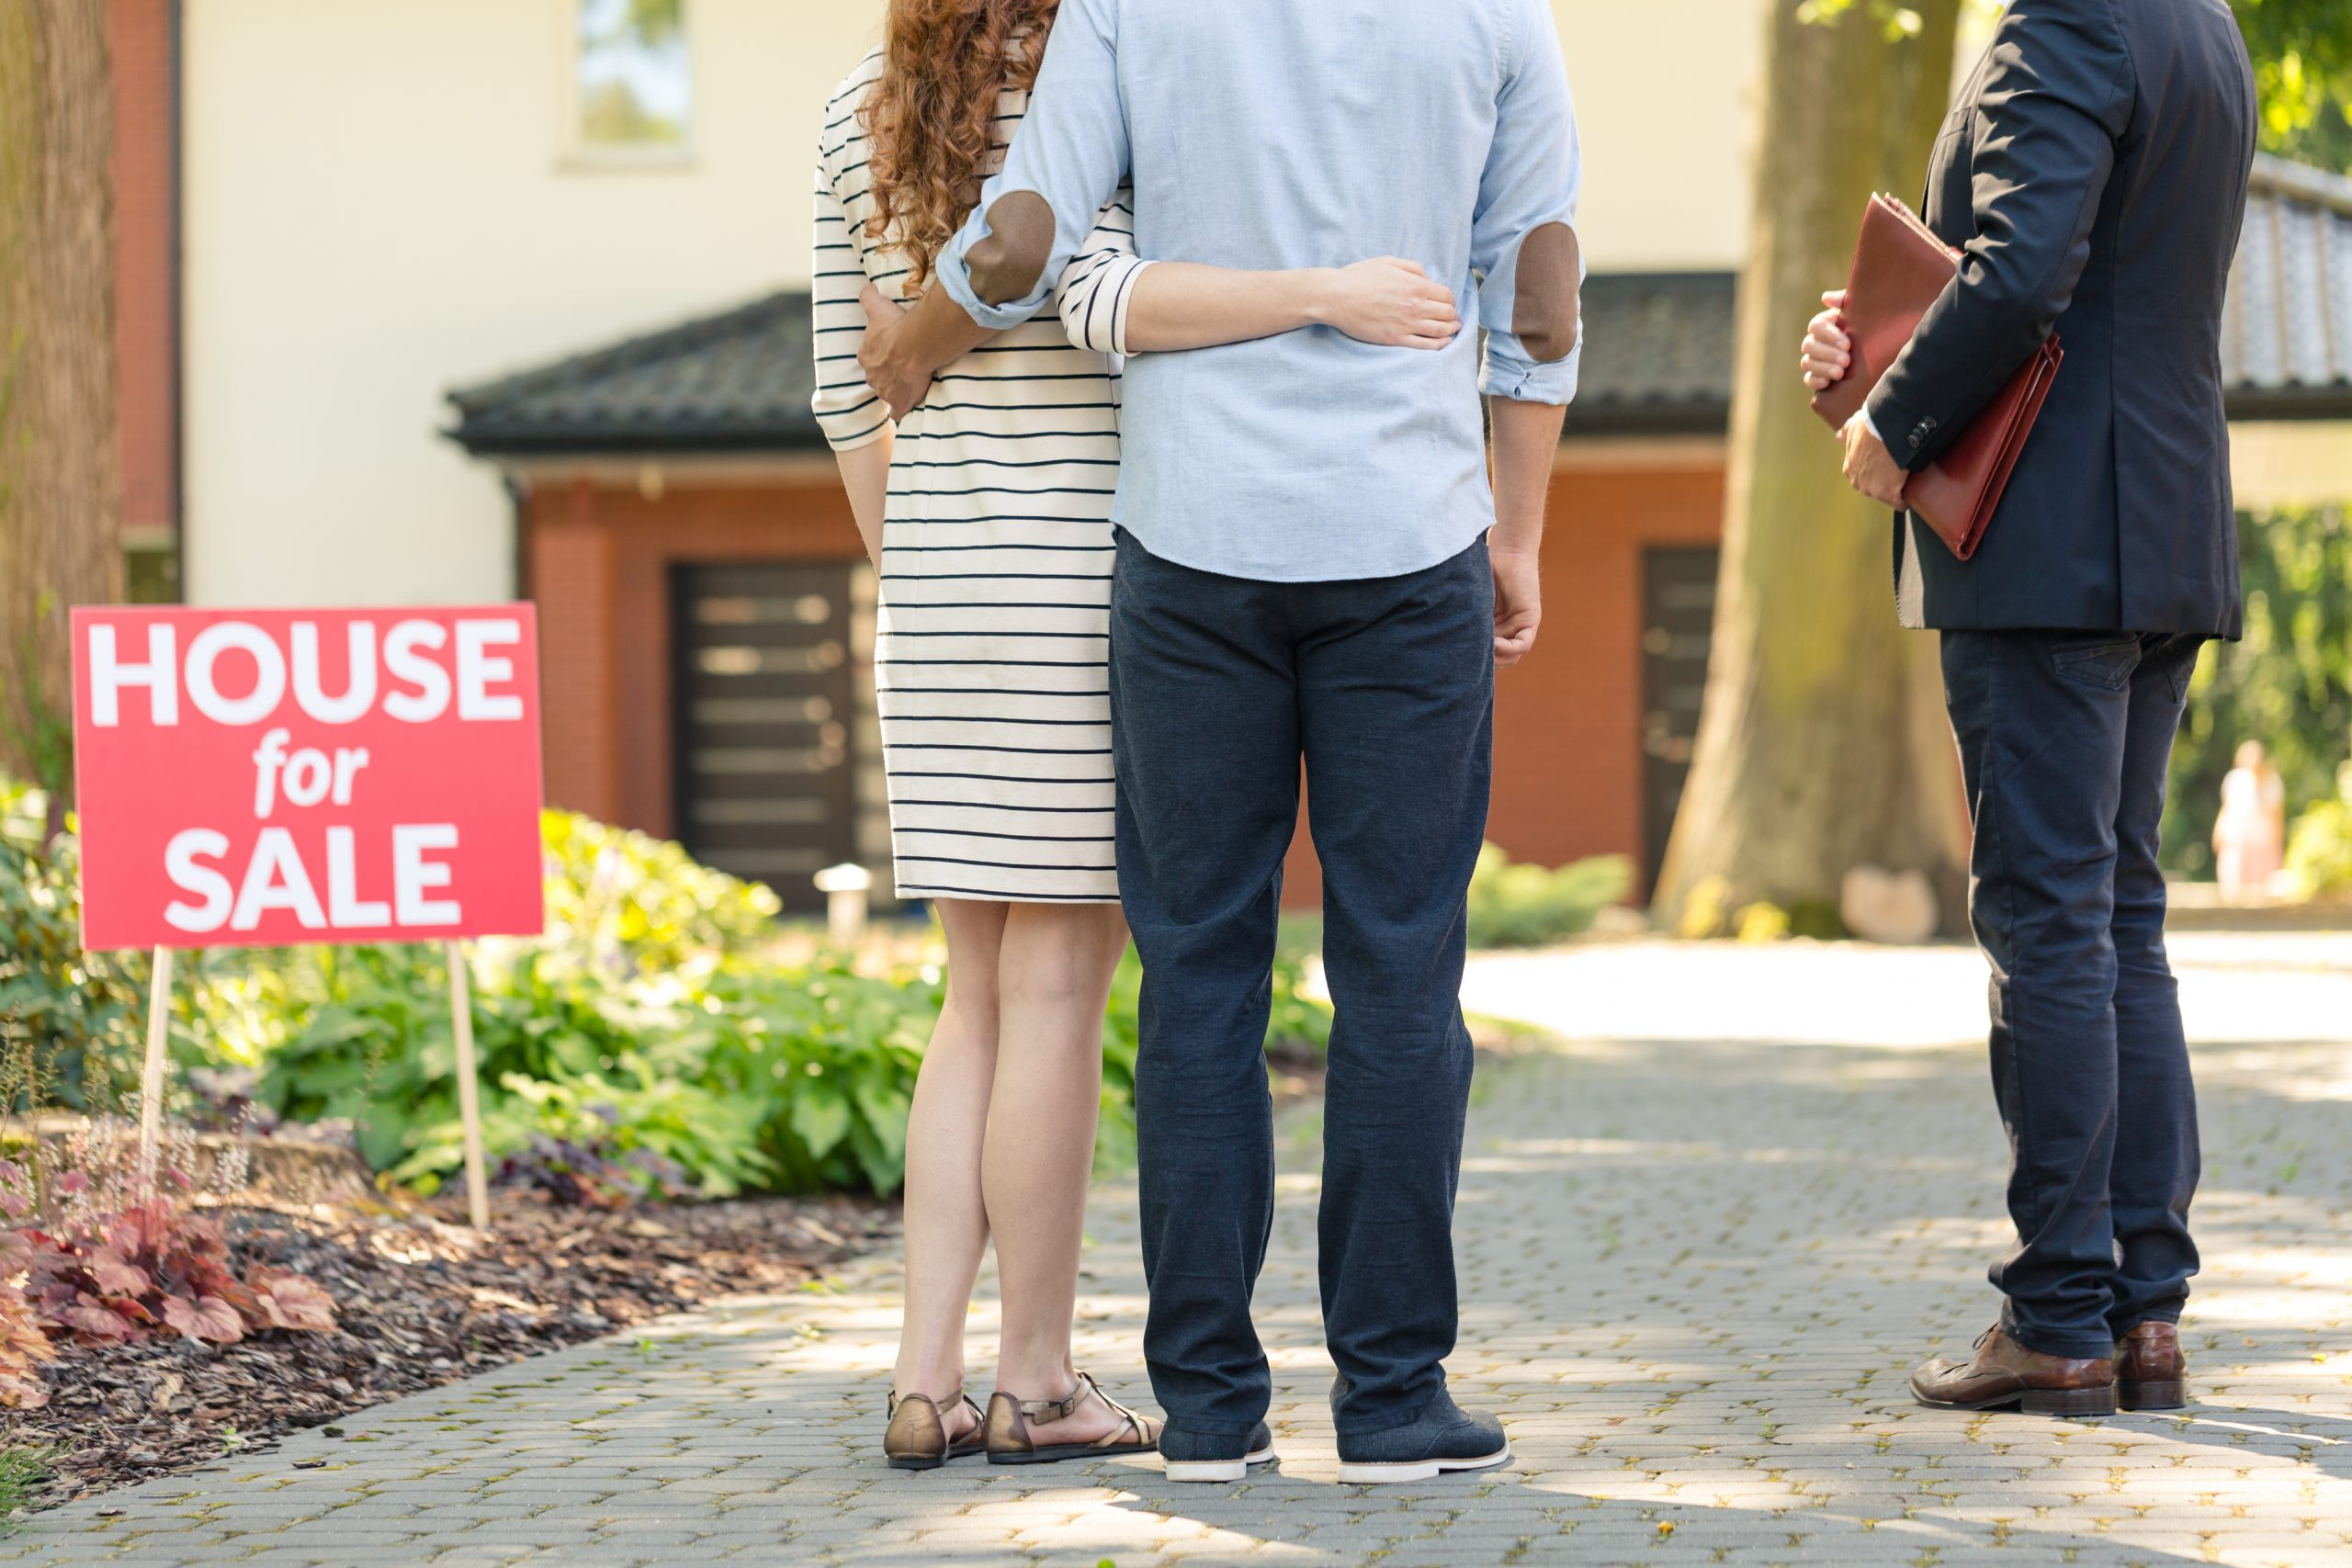 Should I use more than one real estate agent?